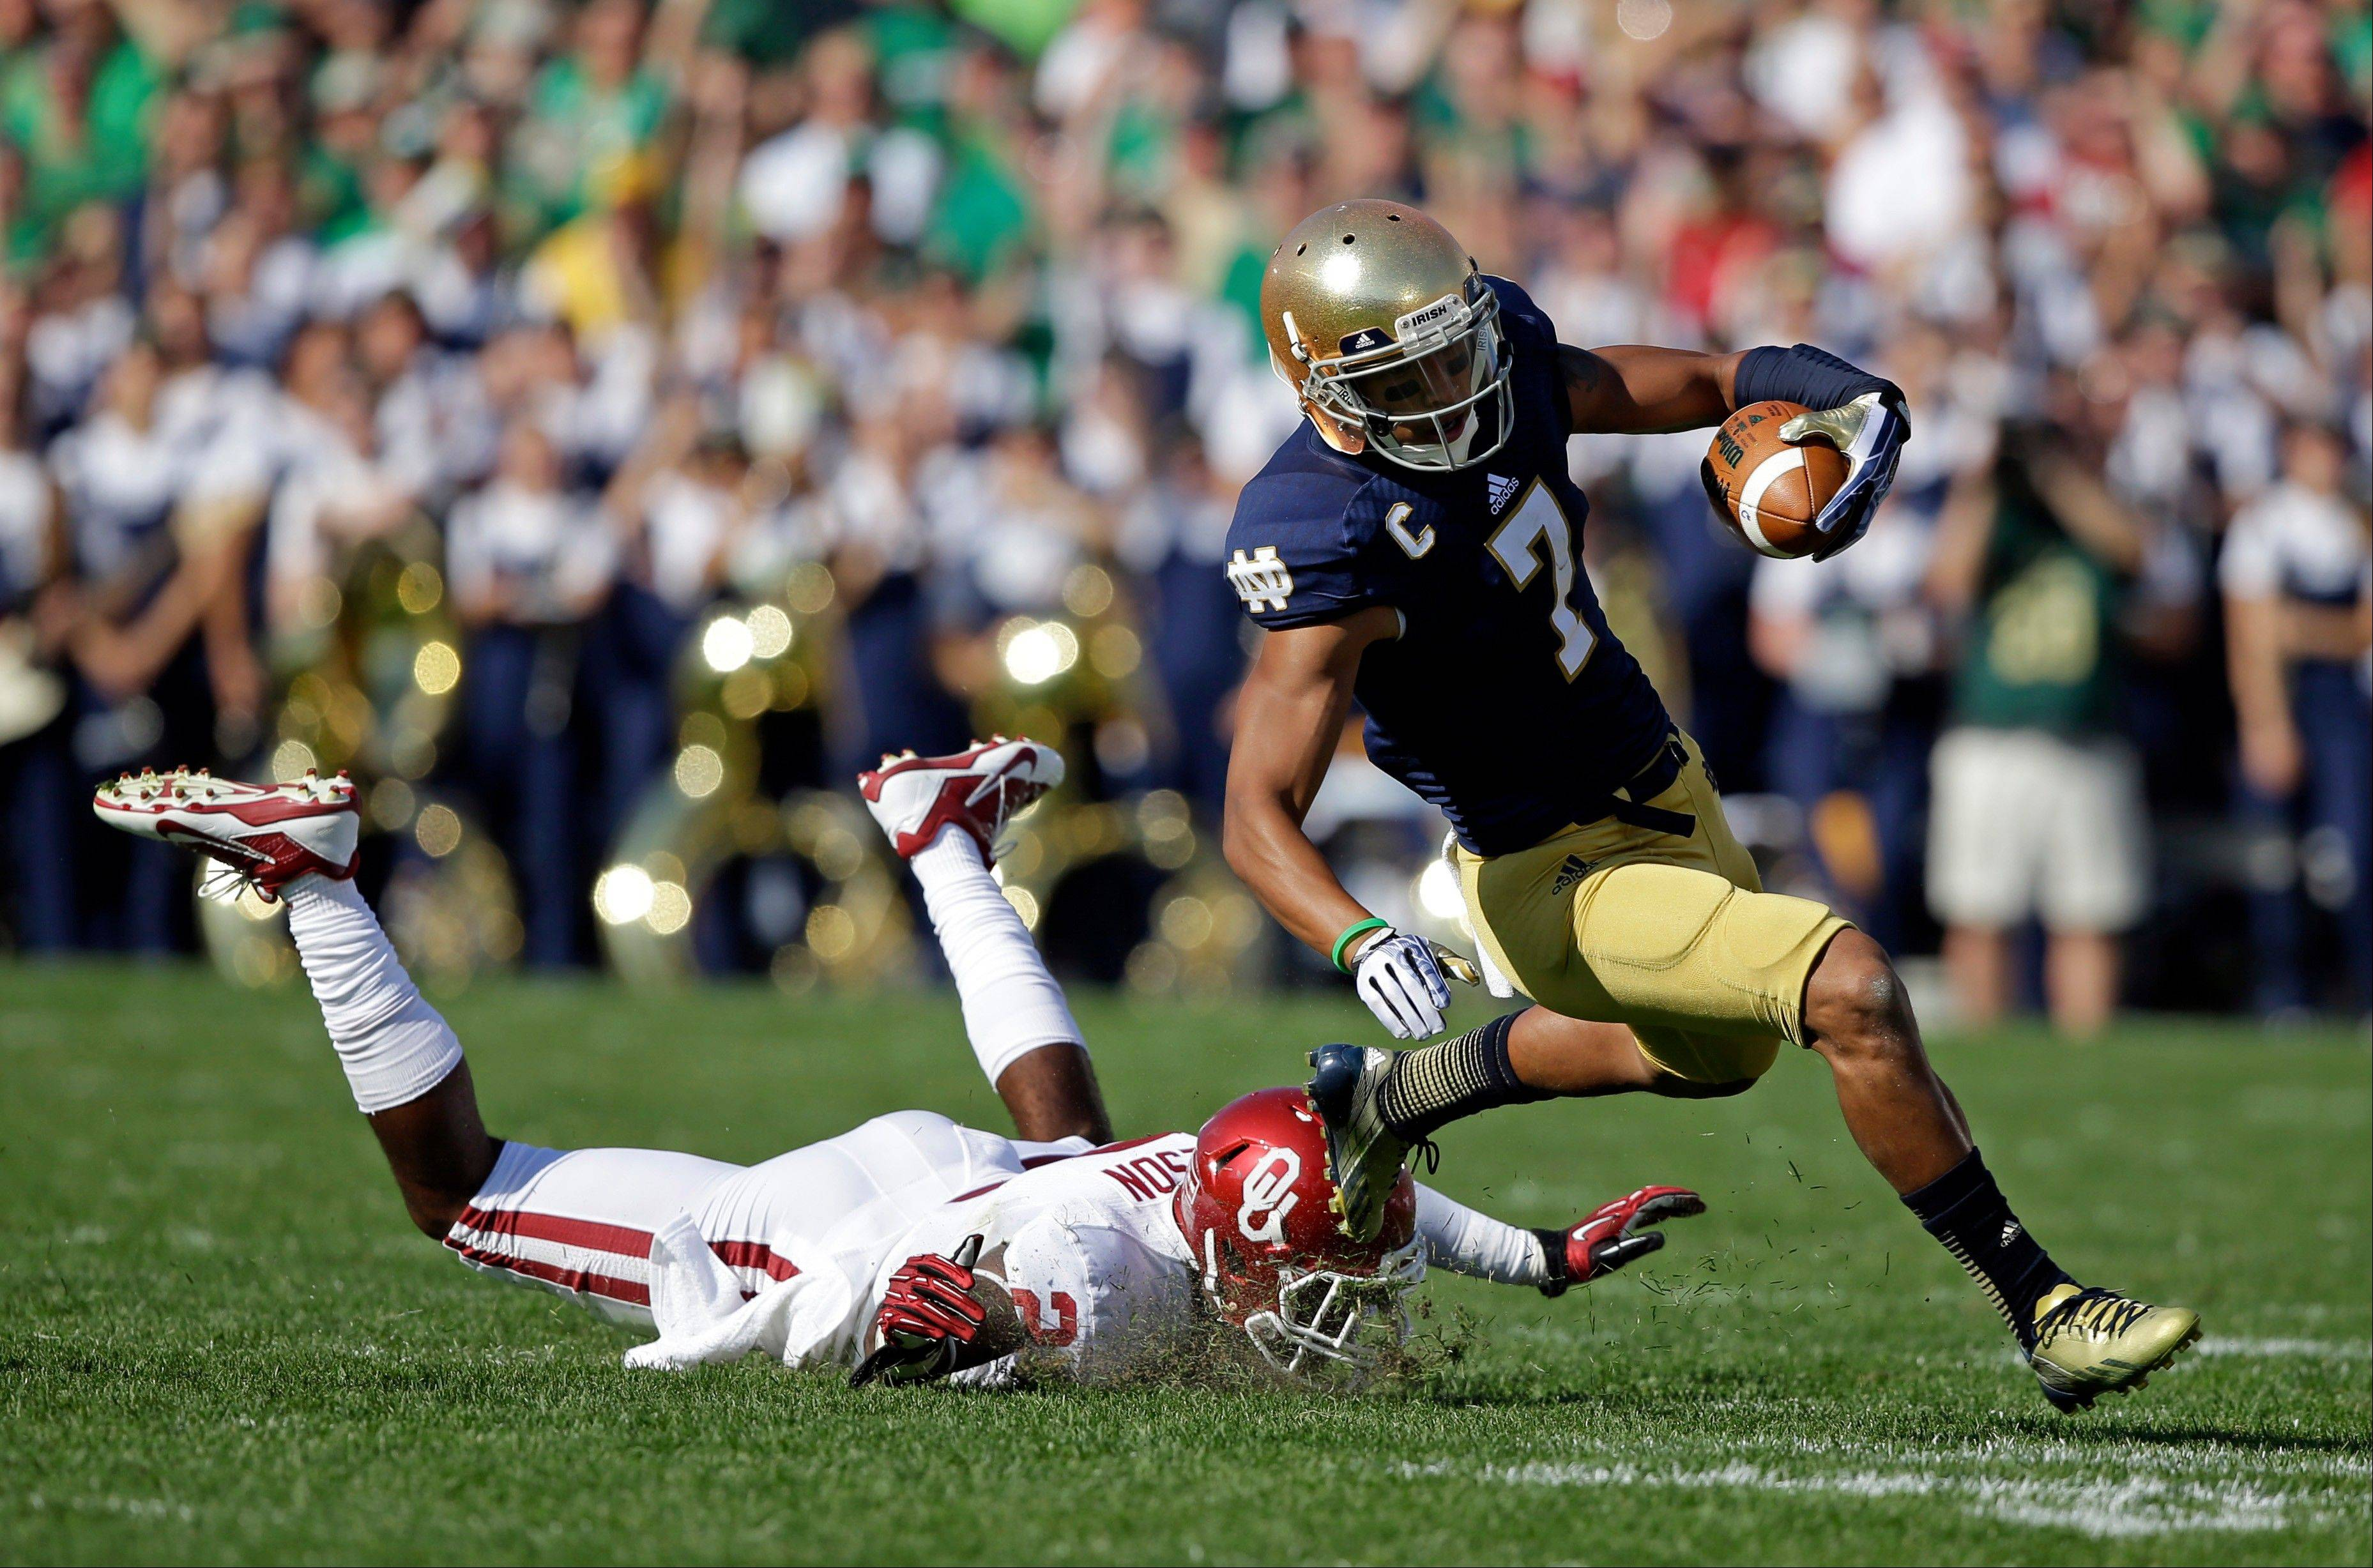 Oklahoma's Julian Wilson (2) tackles Notre Dame's TJ Jones (7) during the first half Saturday in South Bend, Ind.